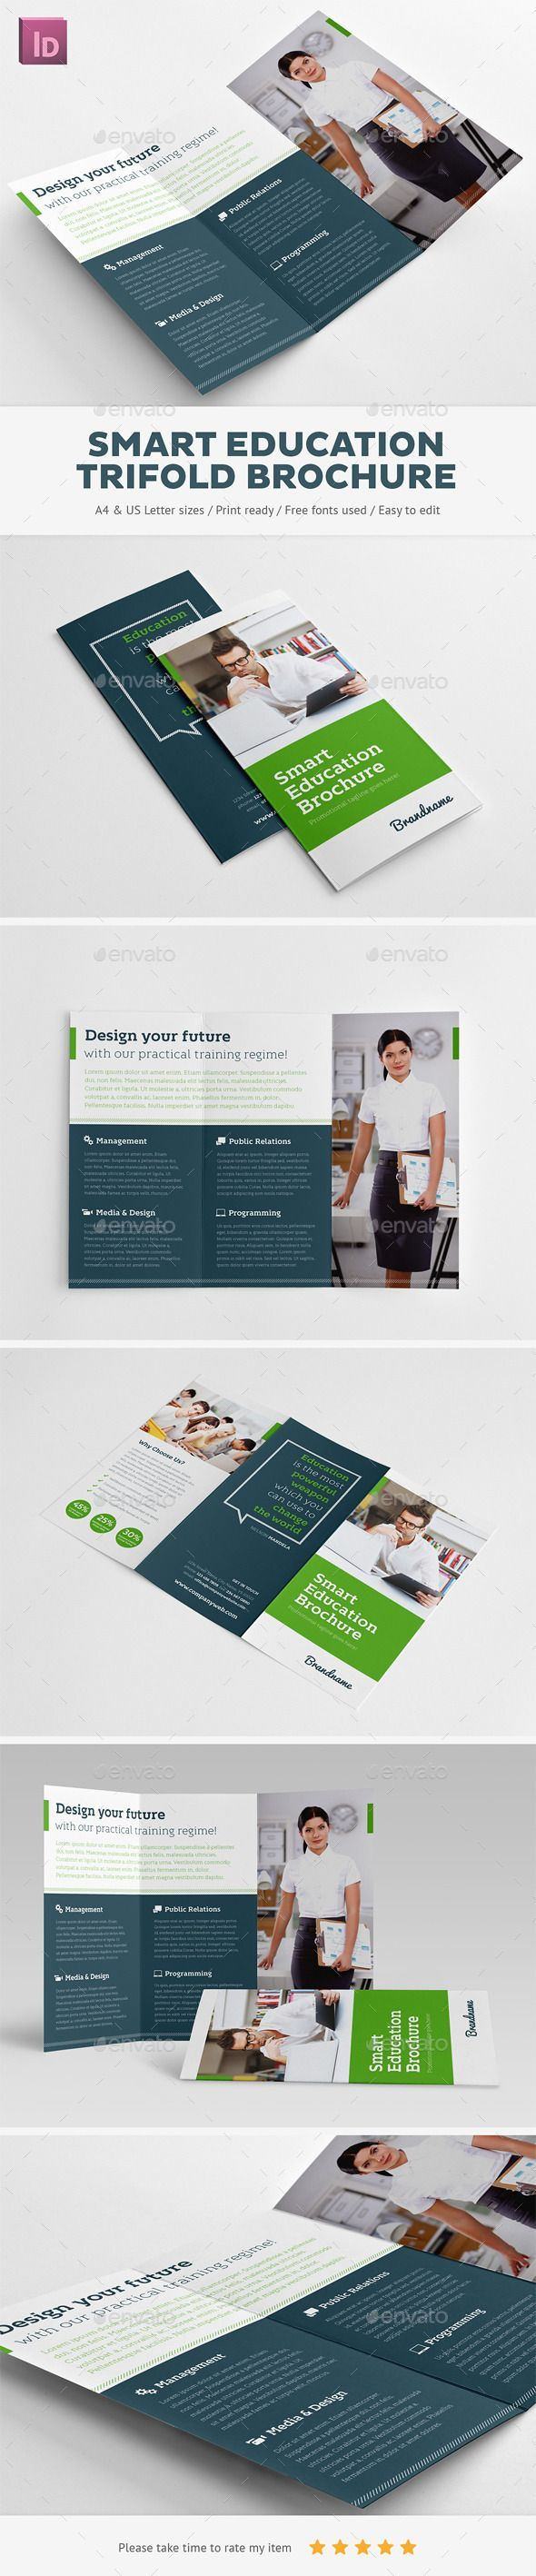 smart education trifold brochure brochures print templates tap